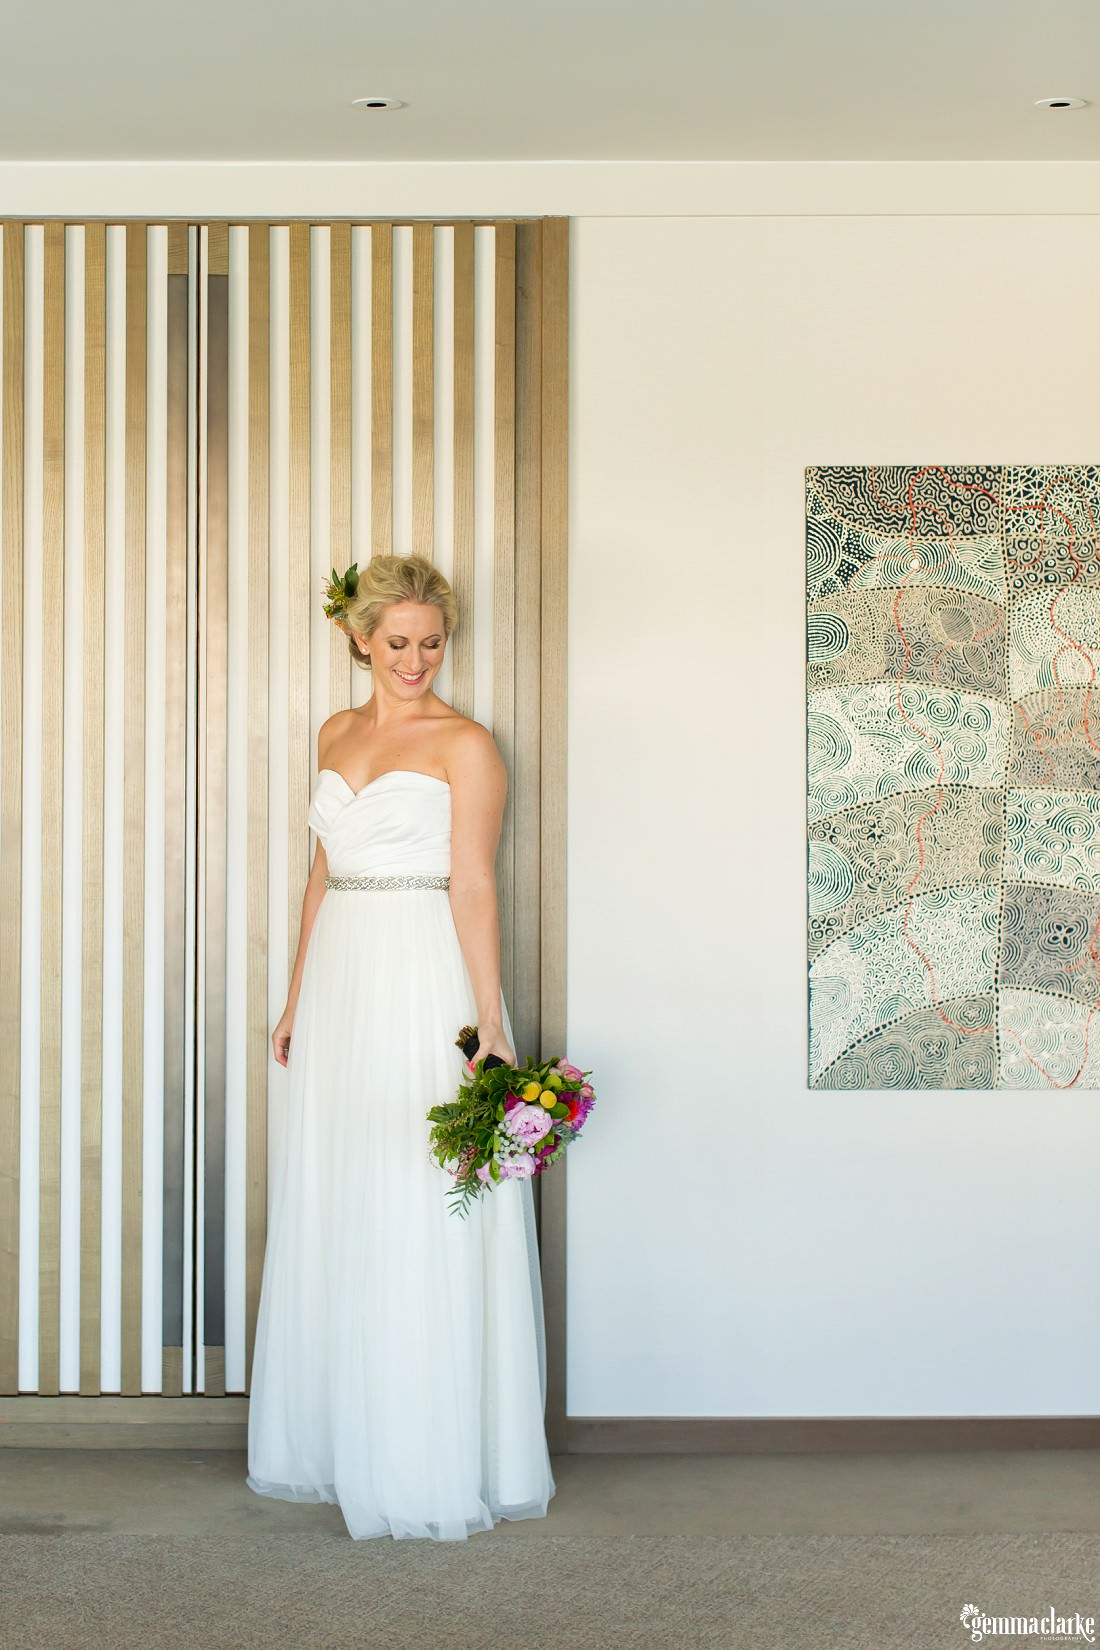 A bride in her wedding gown standing and smiling as she looks down at her bouquet